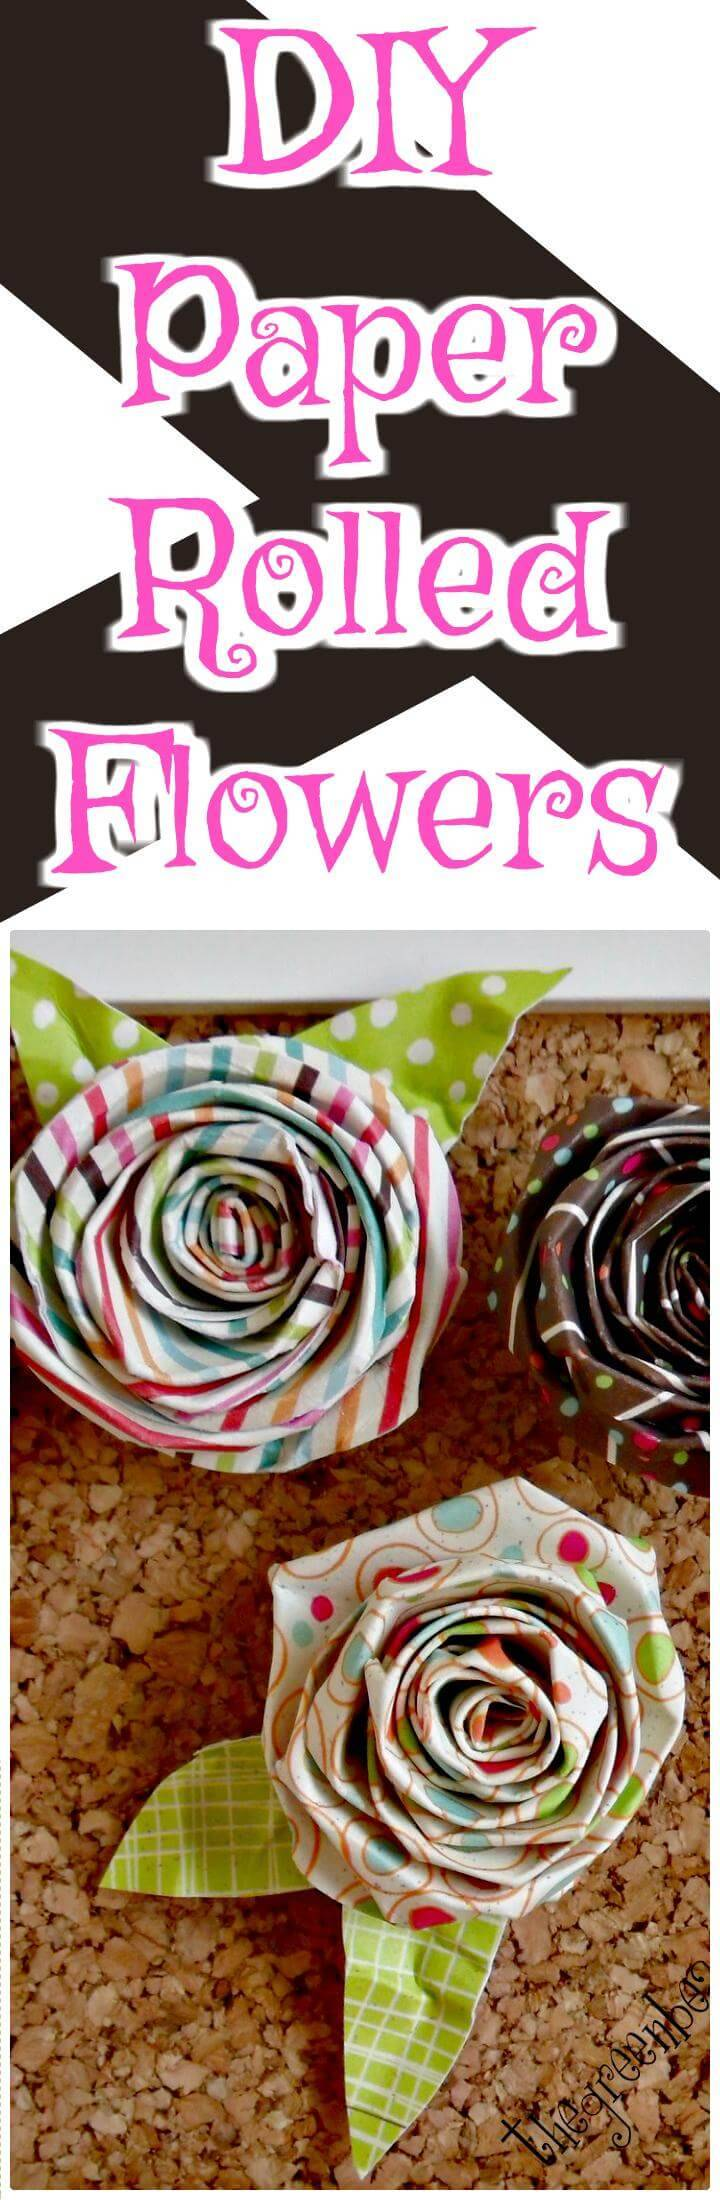 easy handmade paper rolled flowers